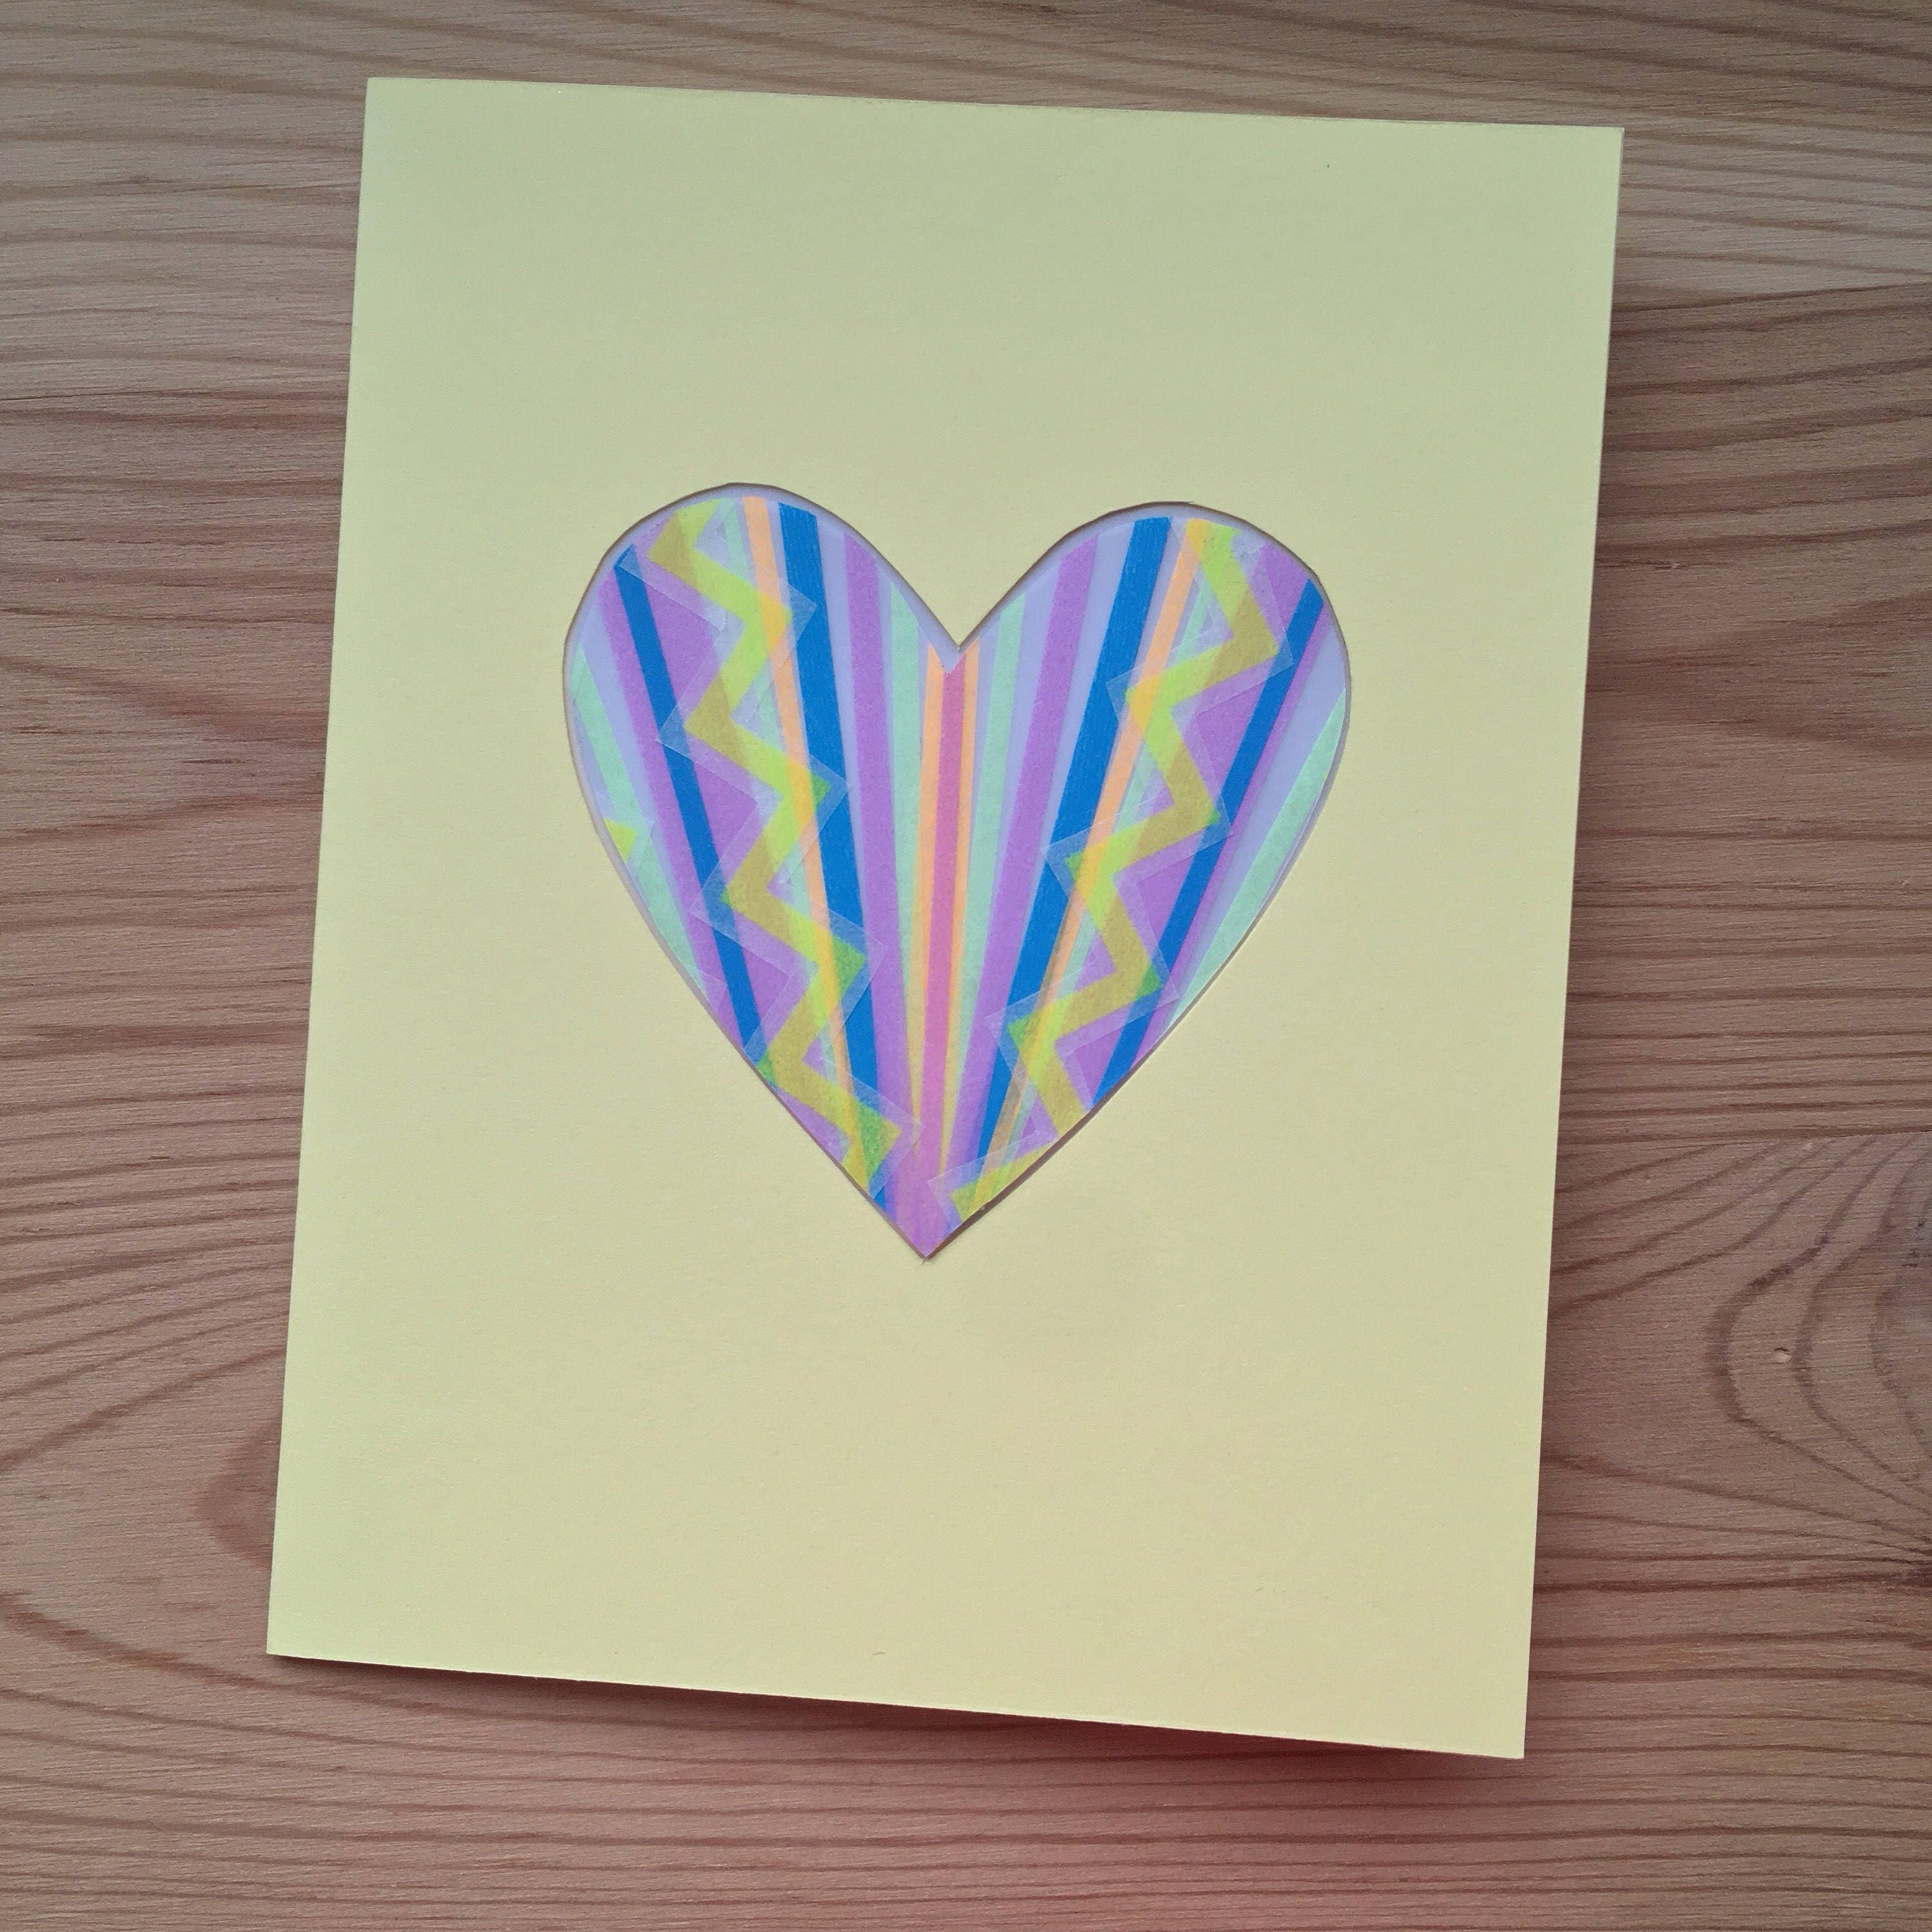 Unique Handmade Greeting Card With Colorful Washi Tape Window